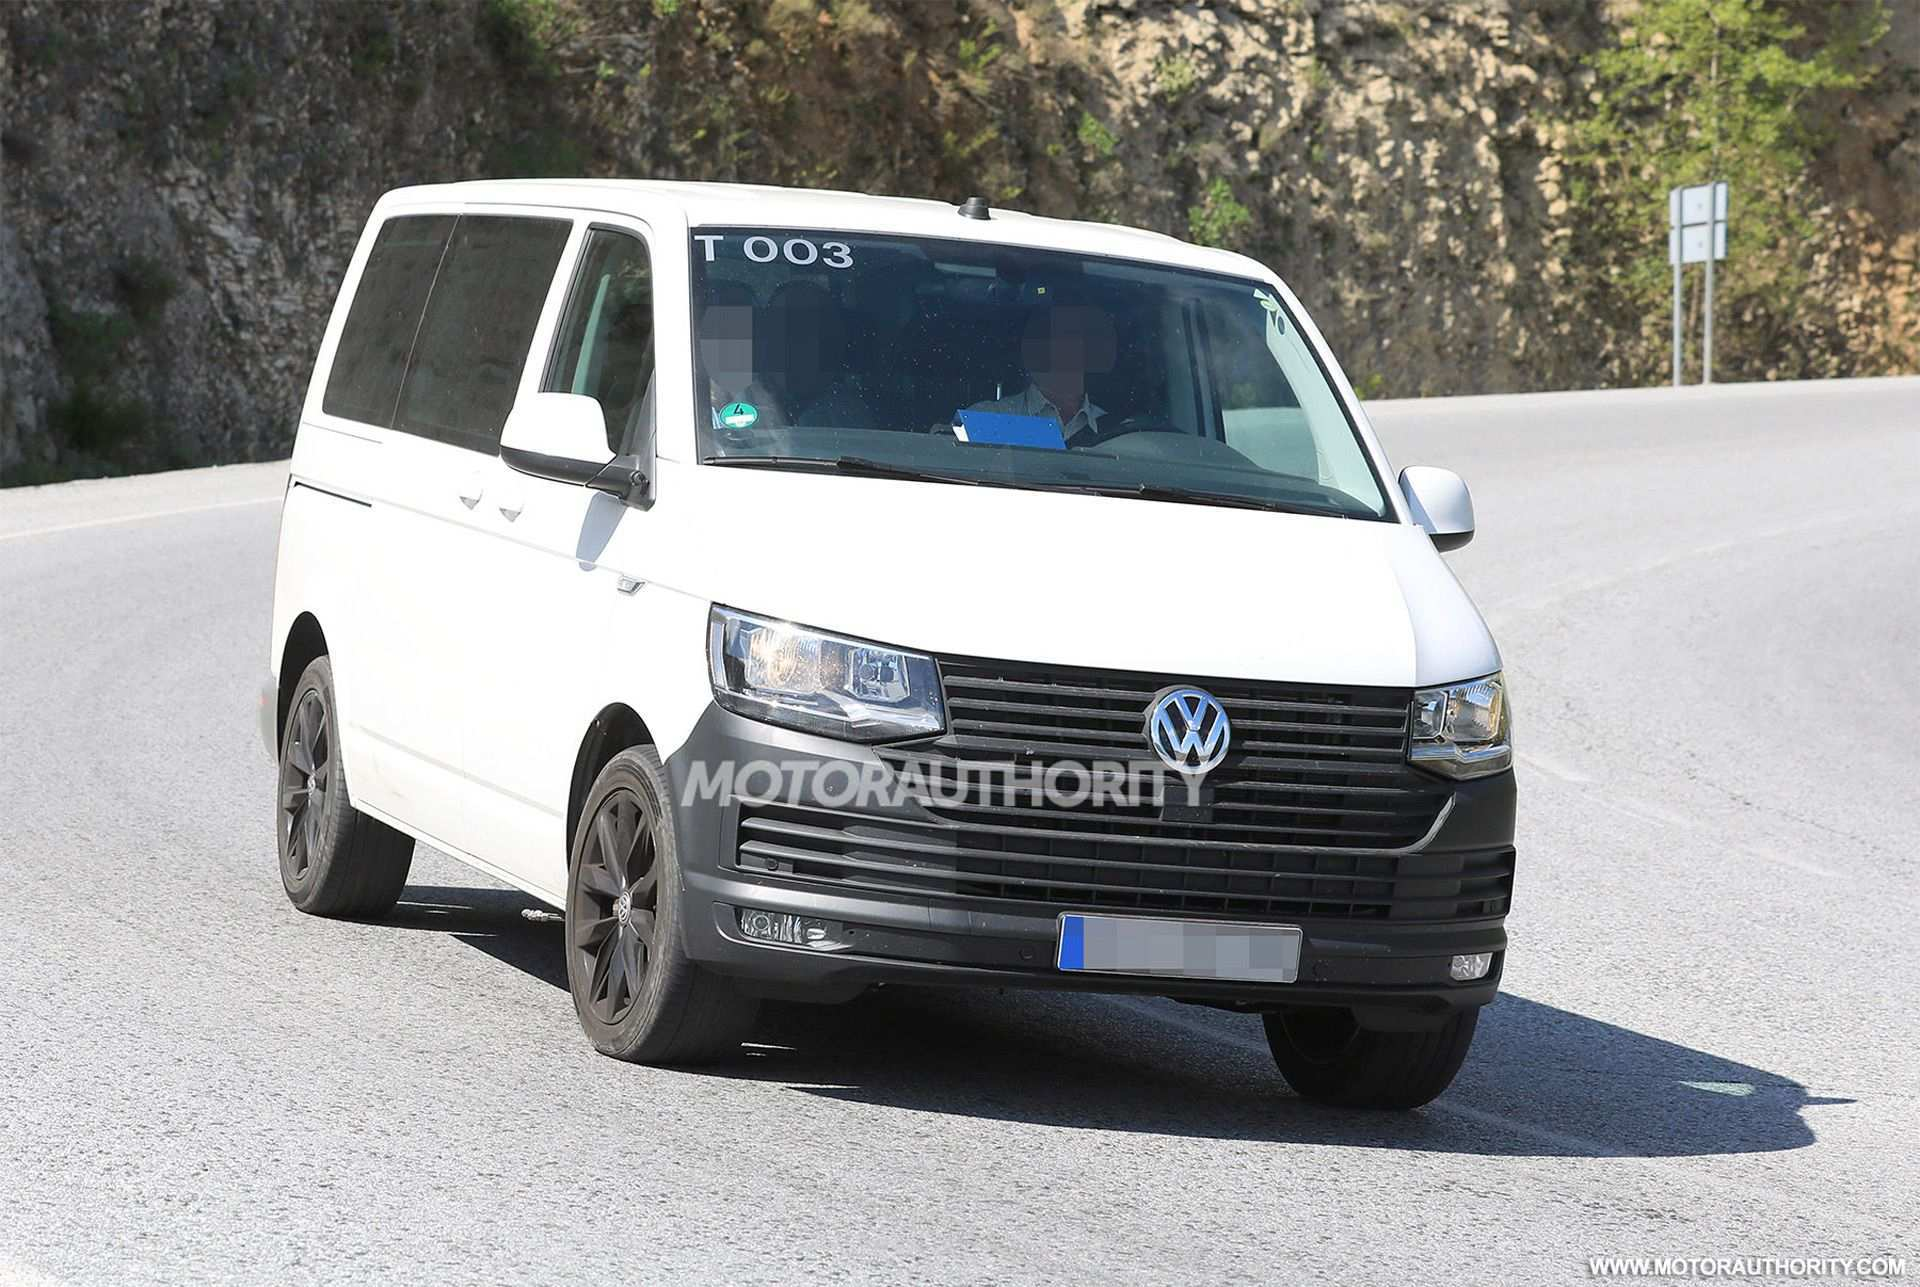 63 All New Volkswagen Transporter 2020 Picture for Volkswagen Transporter 2020